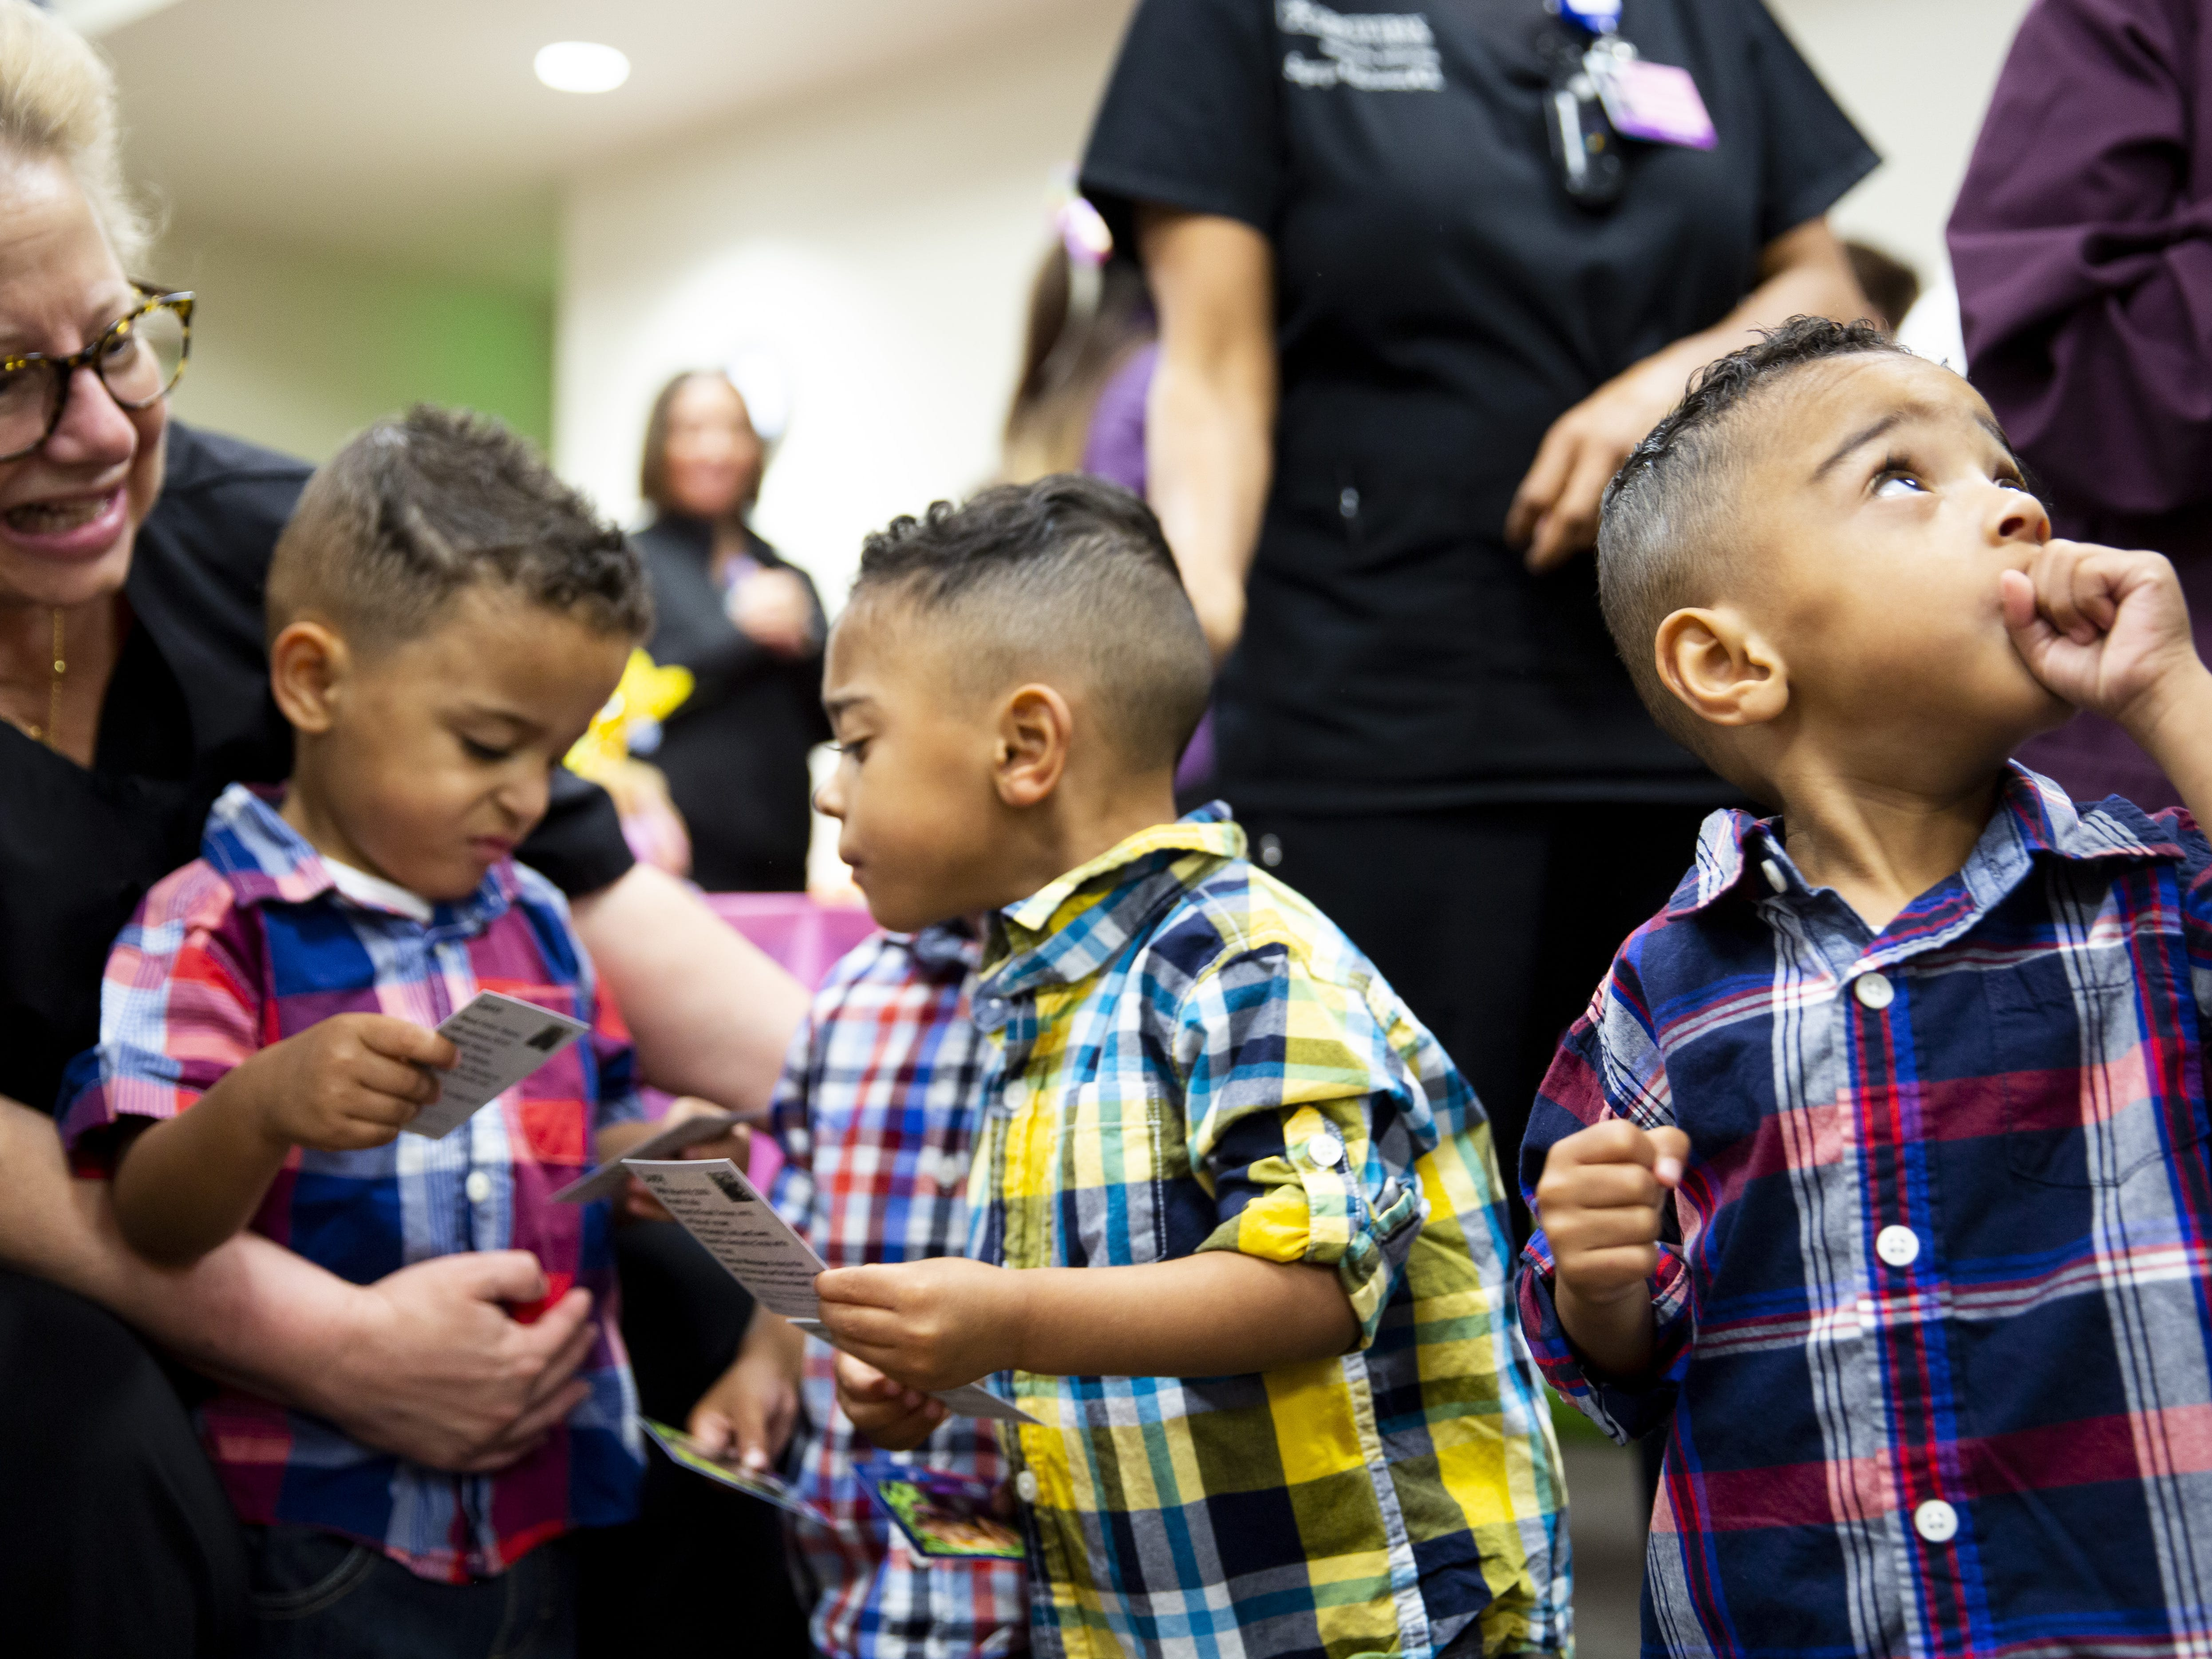 Isaiah, Liam and Jayden Craig look at dogs' business cards at the Preemie NICU Reunion at Banner University Medical Center on April 13, 2019. The boys are part of a set of quadruplets who were delivered at the University, and will turn three this May.